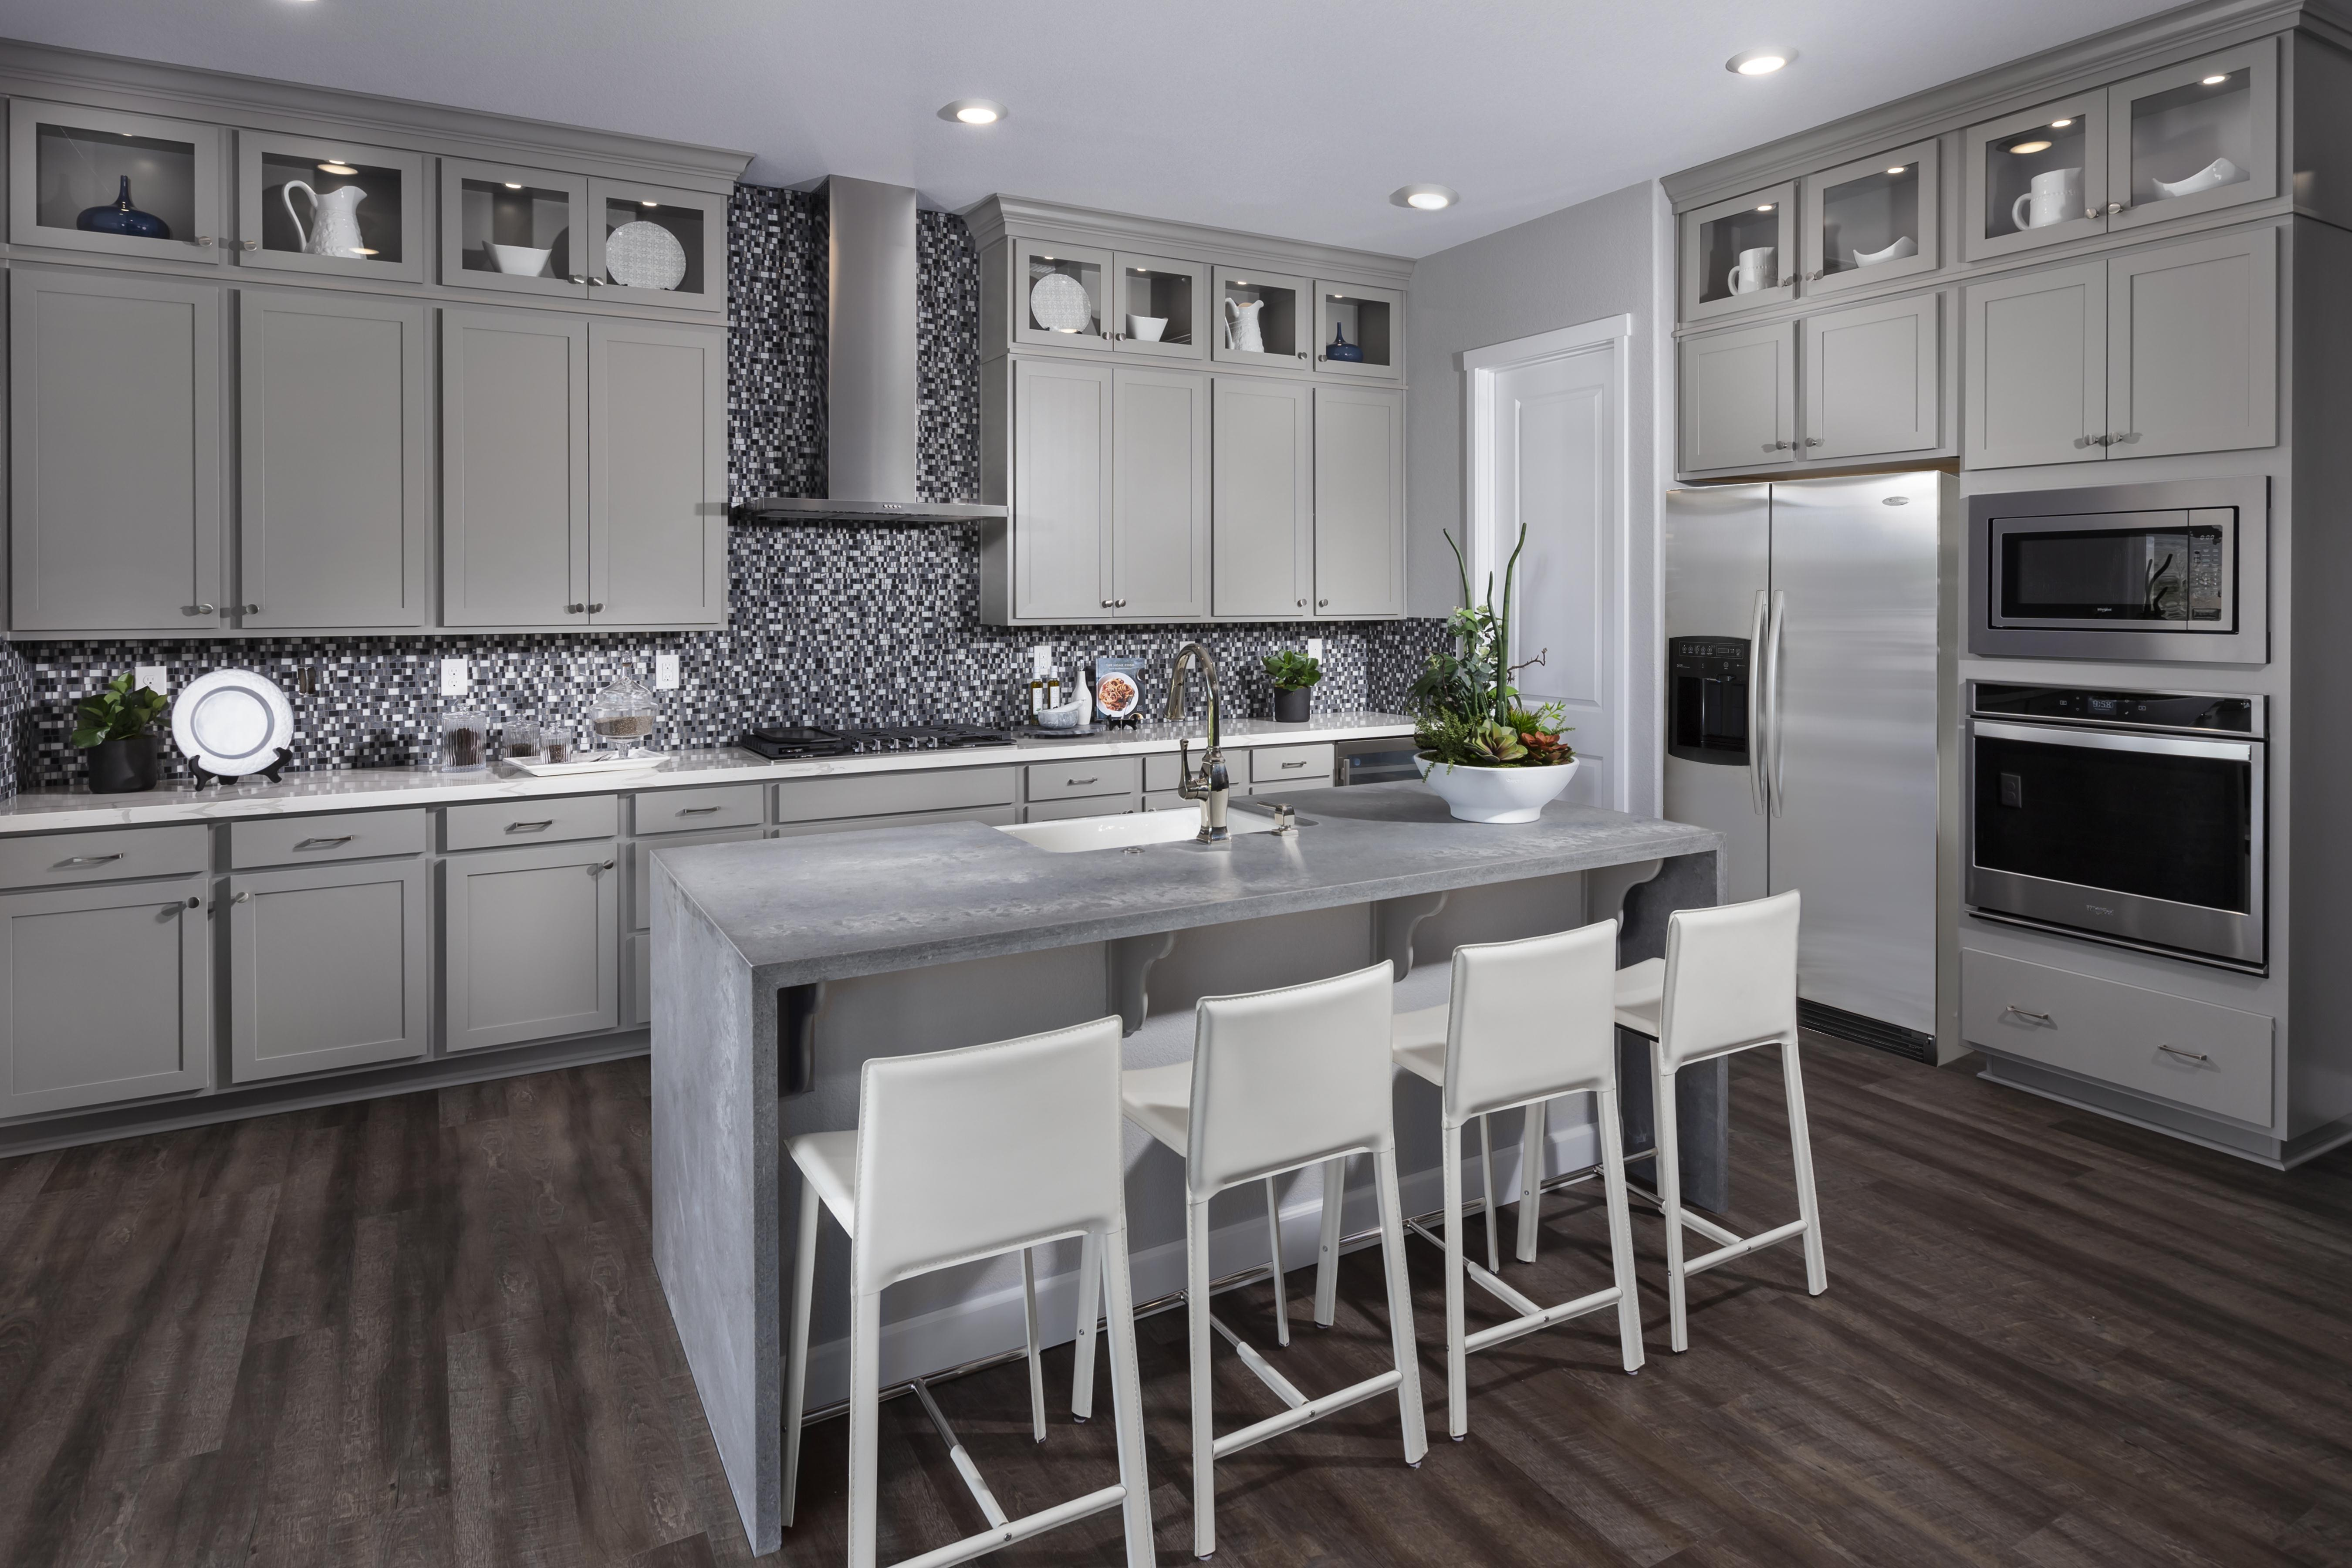 Kitchen featured in the Plan 2 By Tim Lewis Communities in Reno, NV